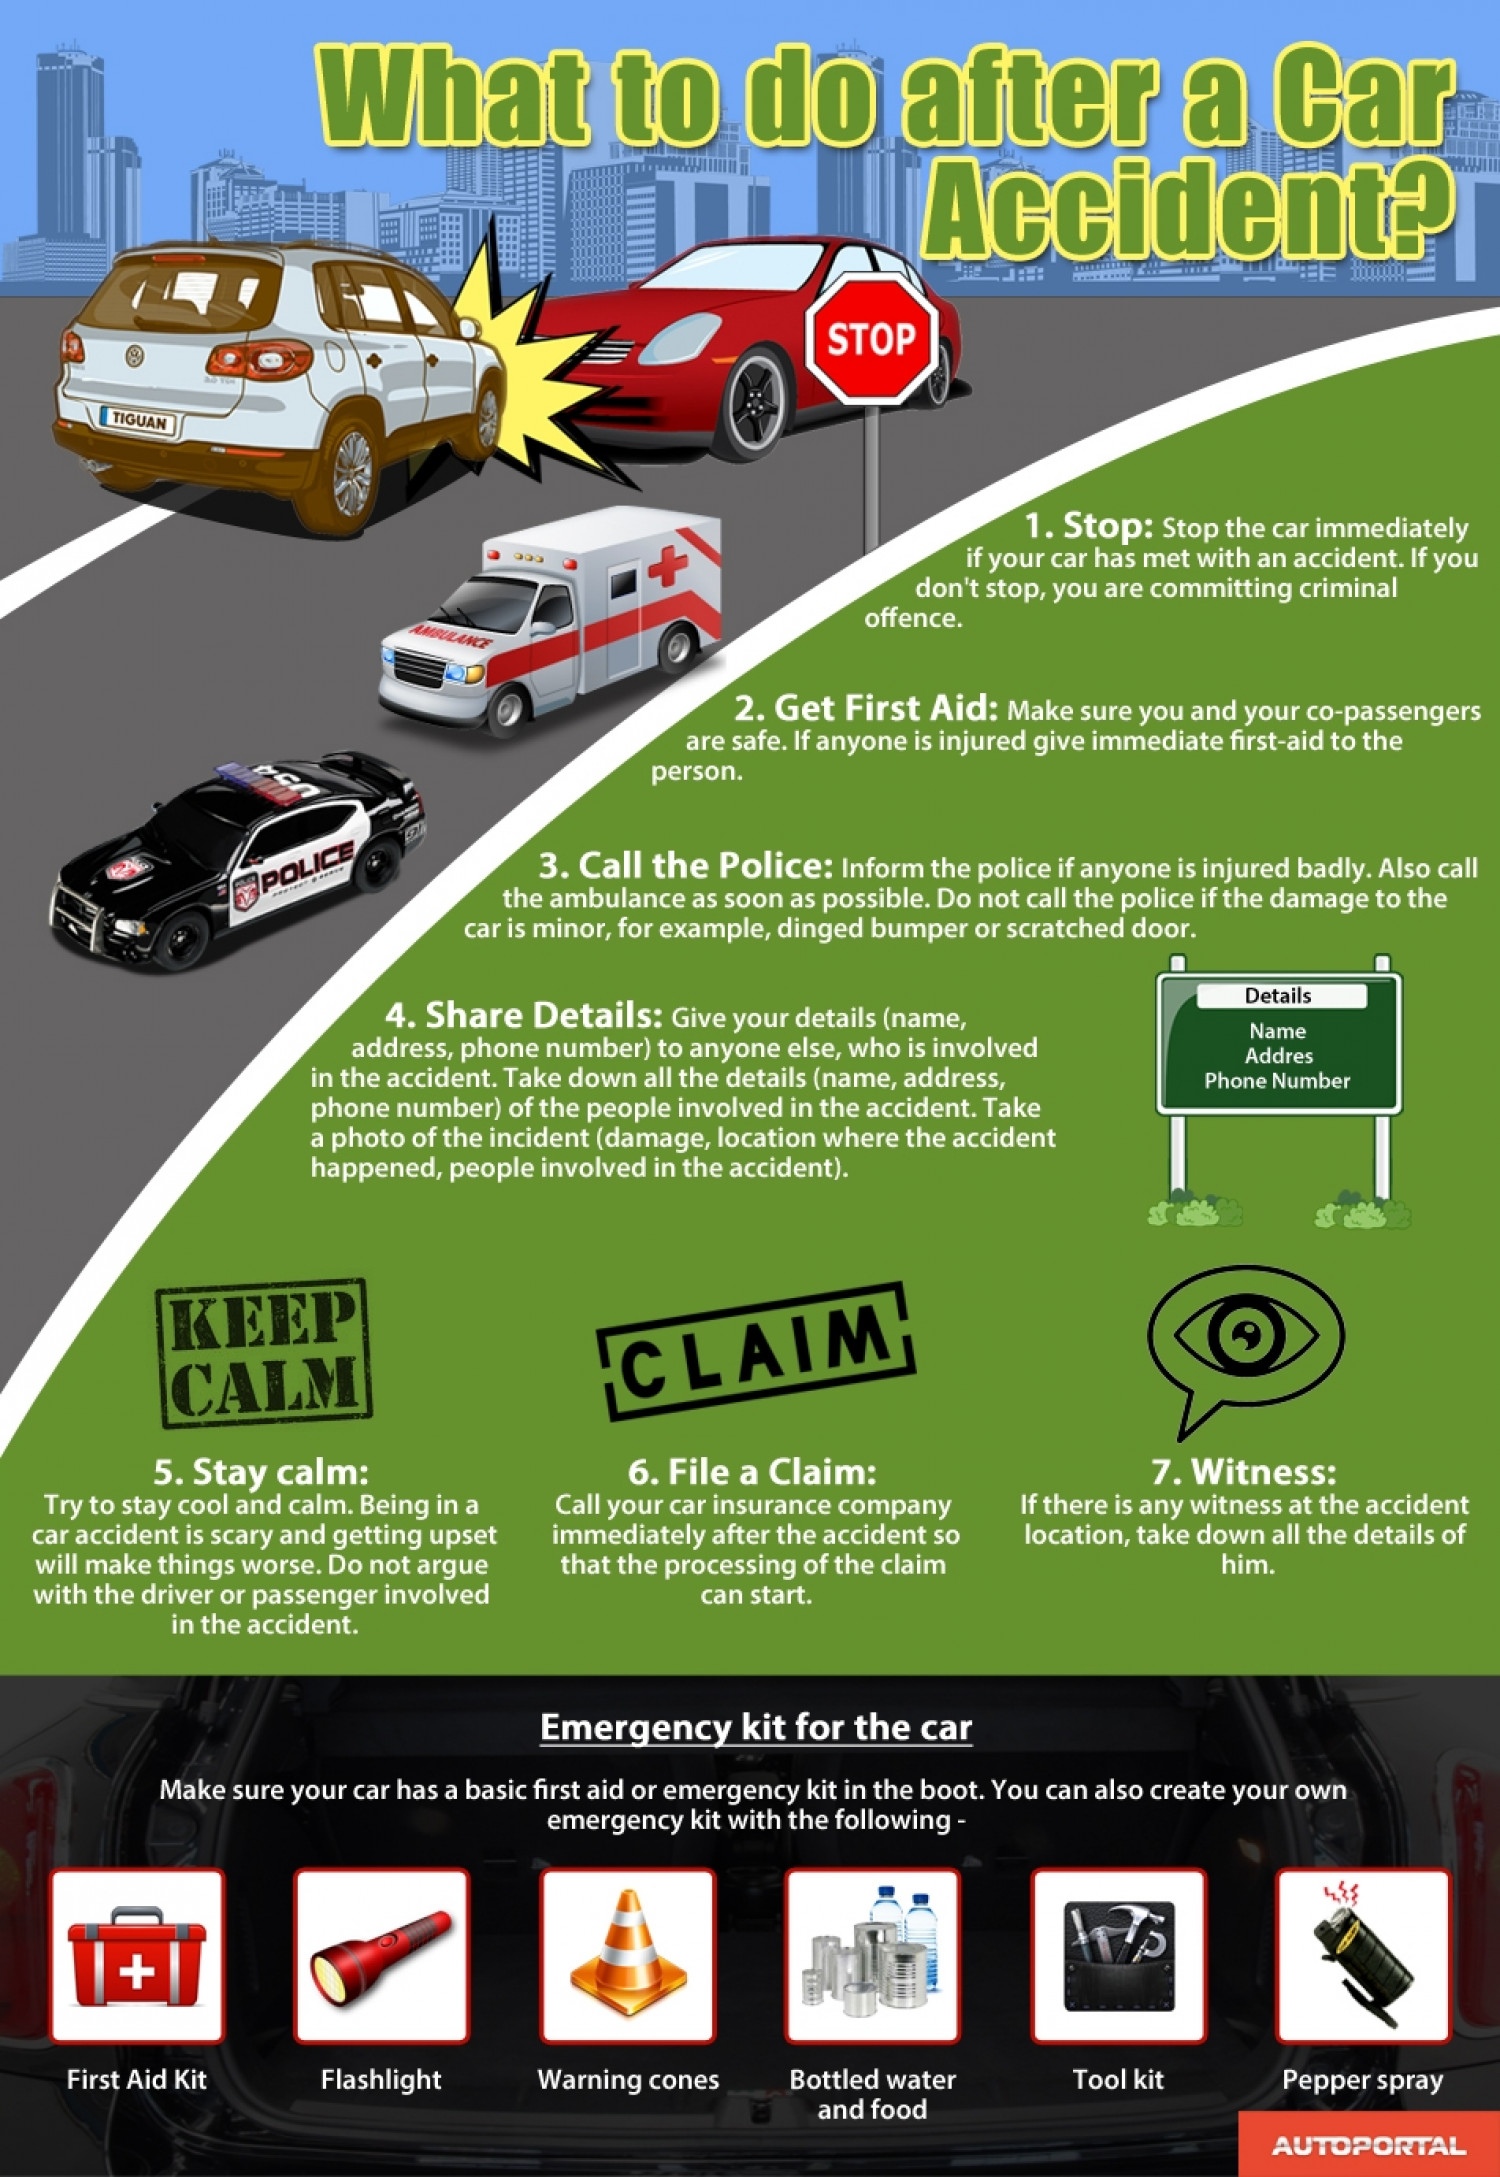 Infographic - What to do after a car accident? | Visual.ly